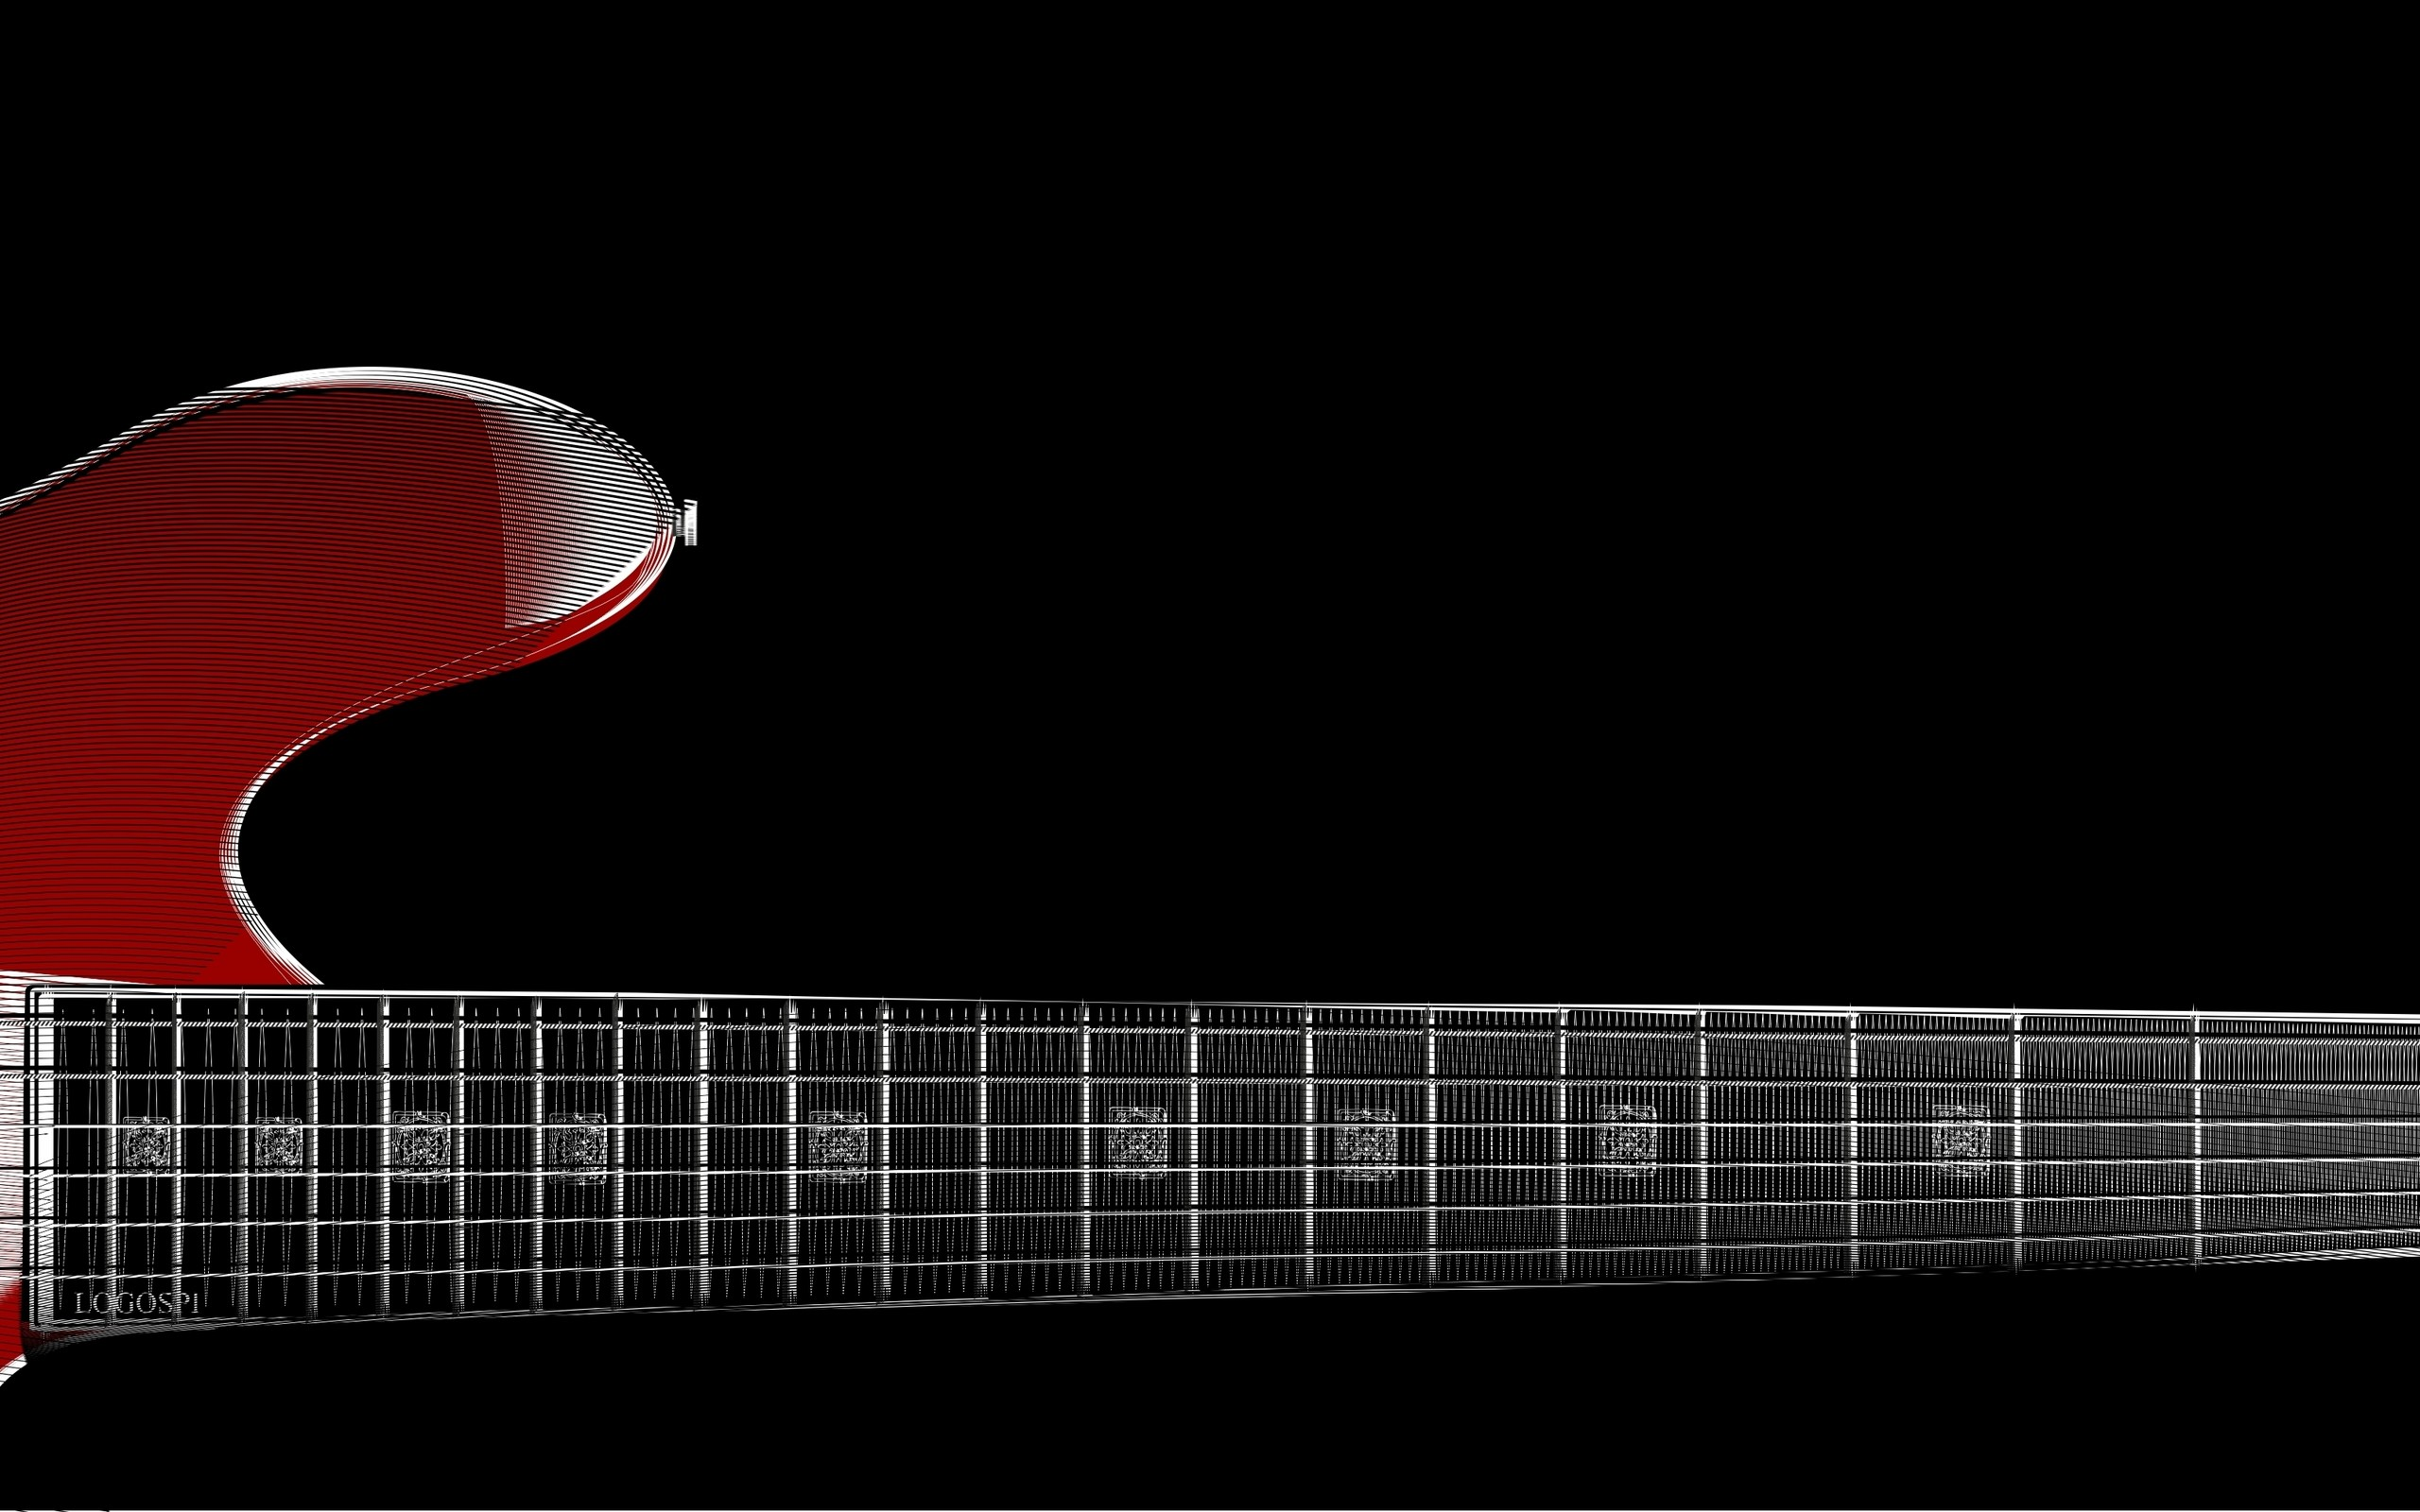 2560x1600 2560x1440 zoom red guitar